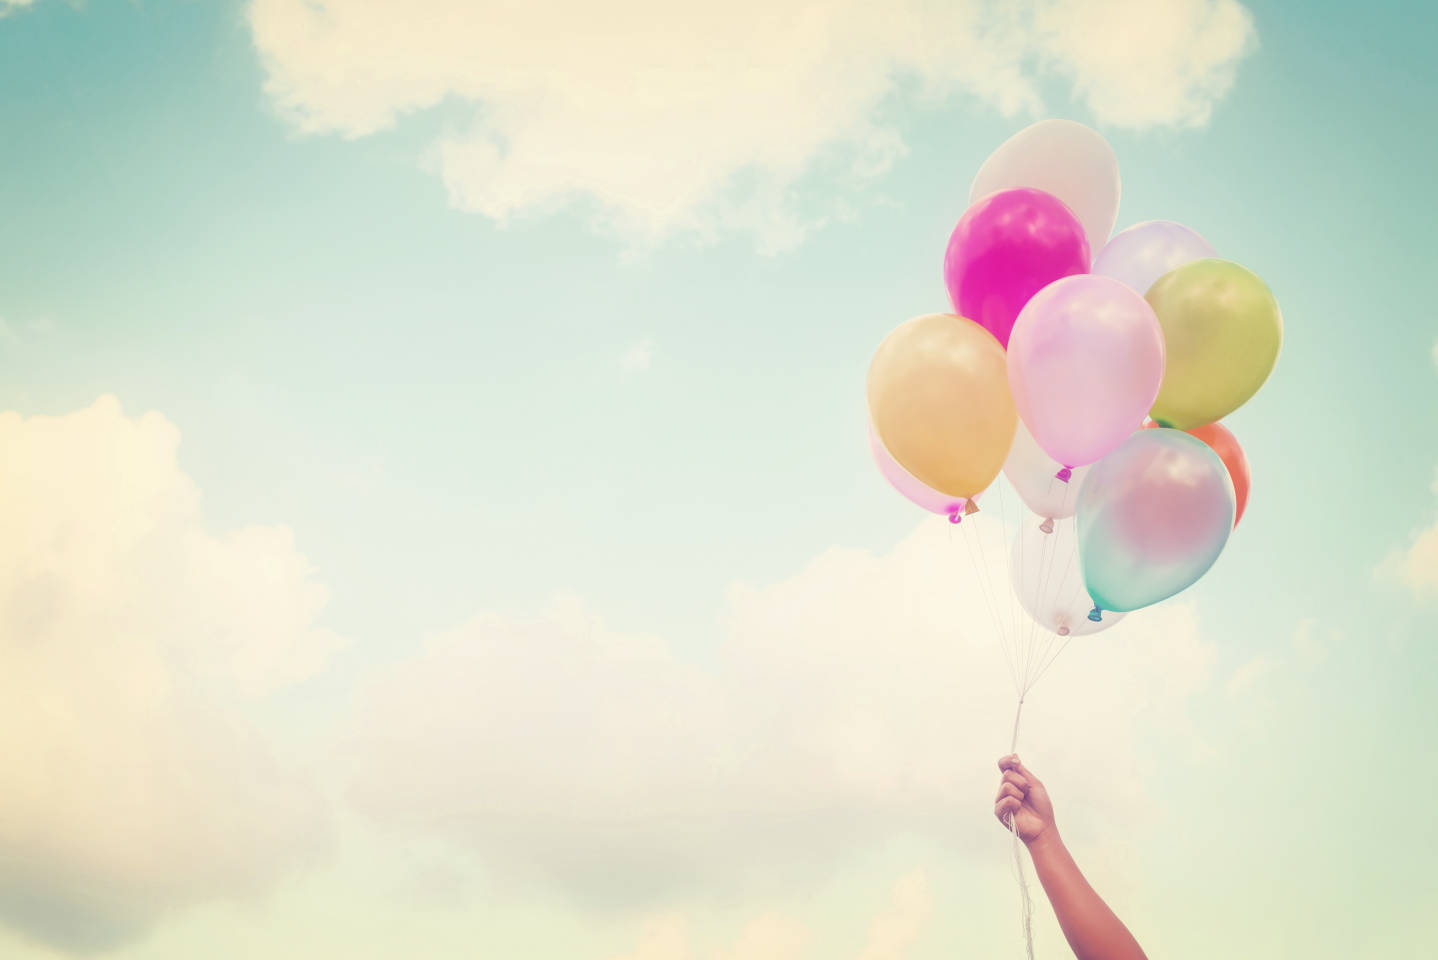 balloons on blue sky background